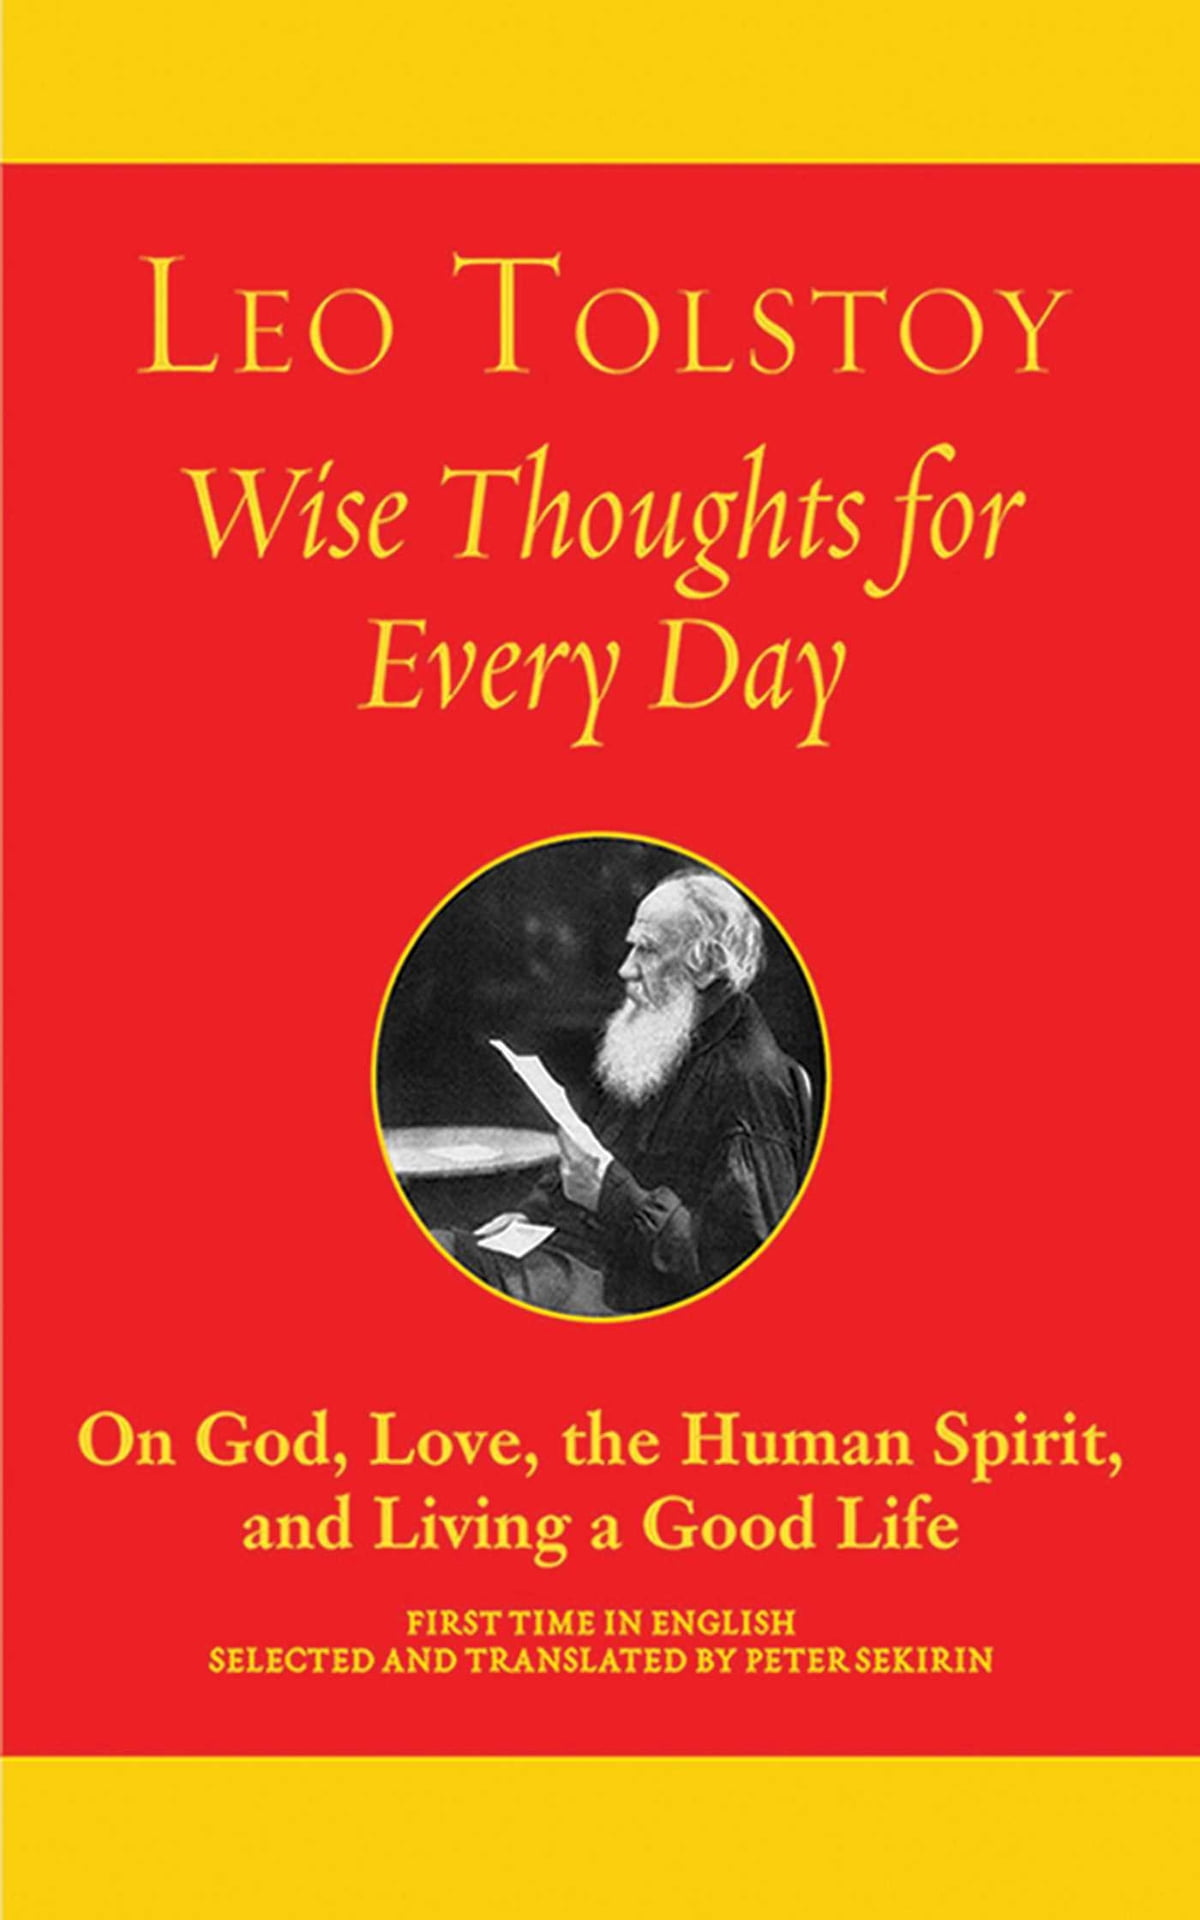 Wise Thoughts for Every Day ebook by Leo Tolstoy - Rakuten Kobo